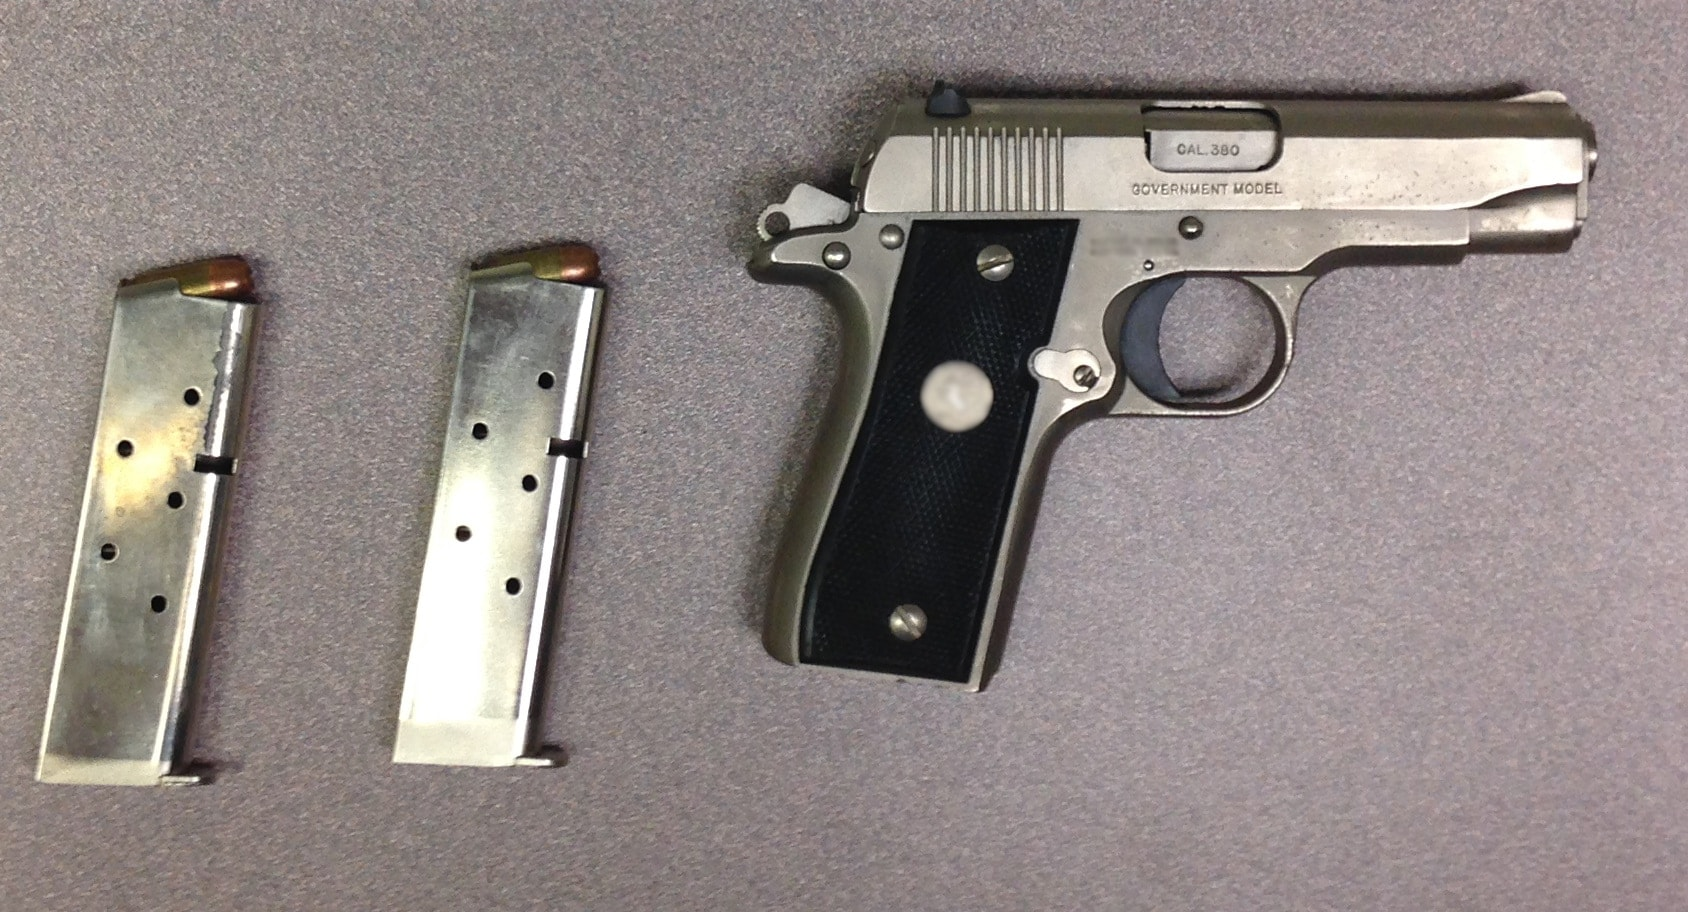 Roy Fielding Neel Jr.'s former Colt .380, now property of the Canadian government. (Photo: Canada Border Services Agency)